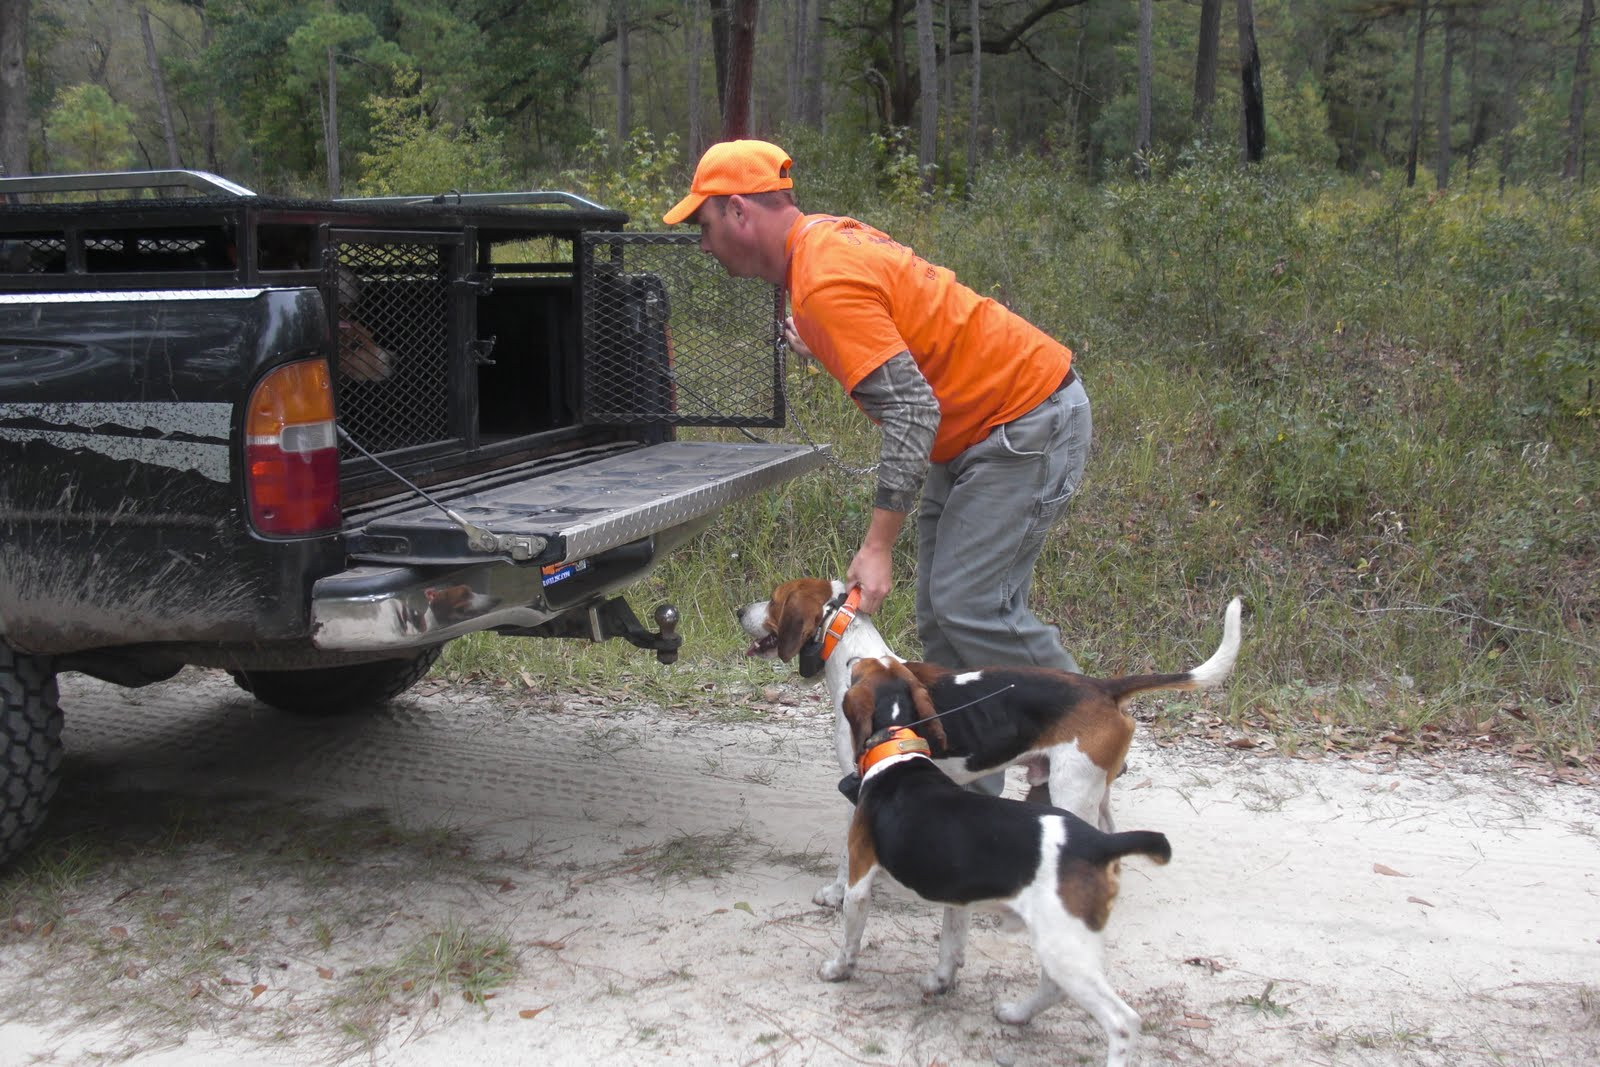 Deer hunting dog breeds - photo#15